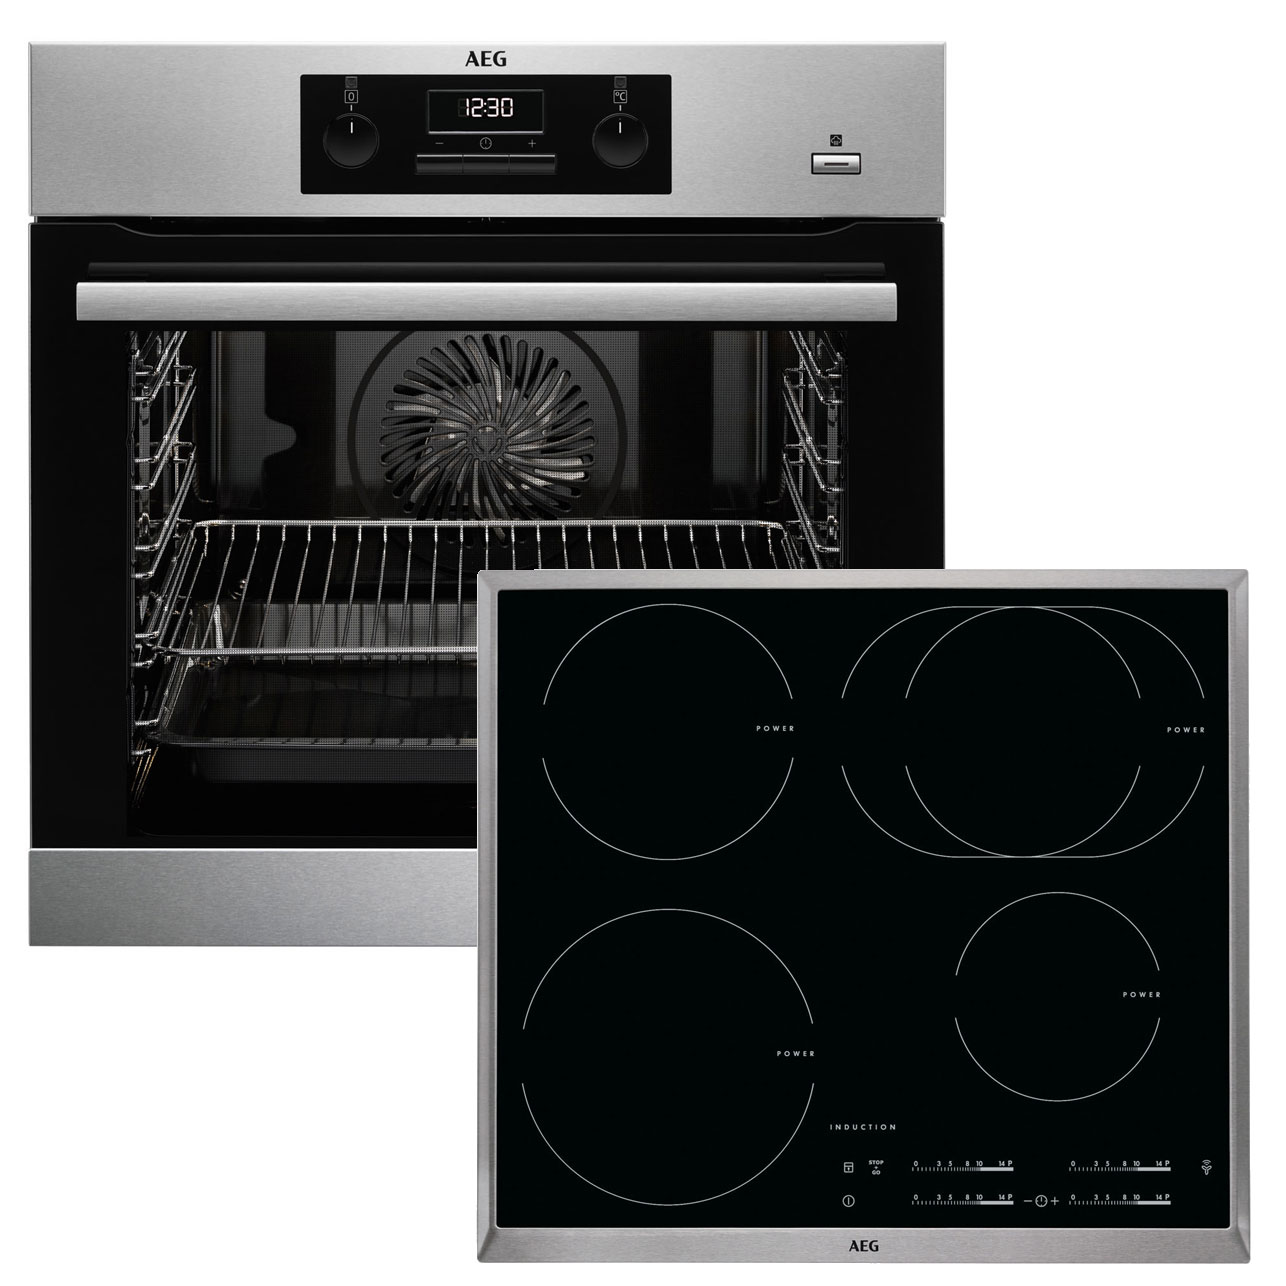 aeg beb354 backofen set 944187705 beb351010m backofen hk6542h1x b autark ind ebay. Black Bedroom Furniture Sets. Home Design Ideas